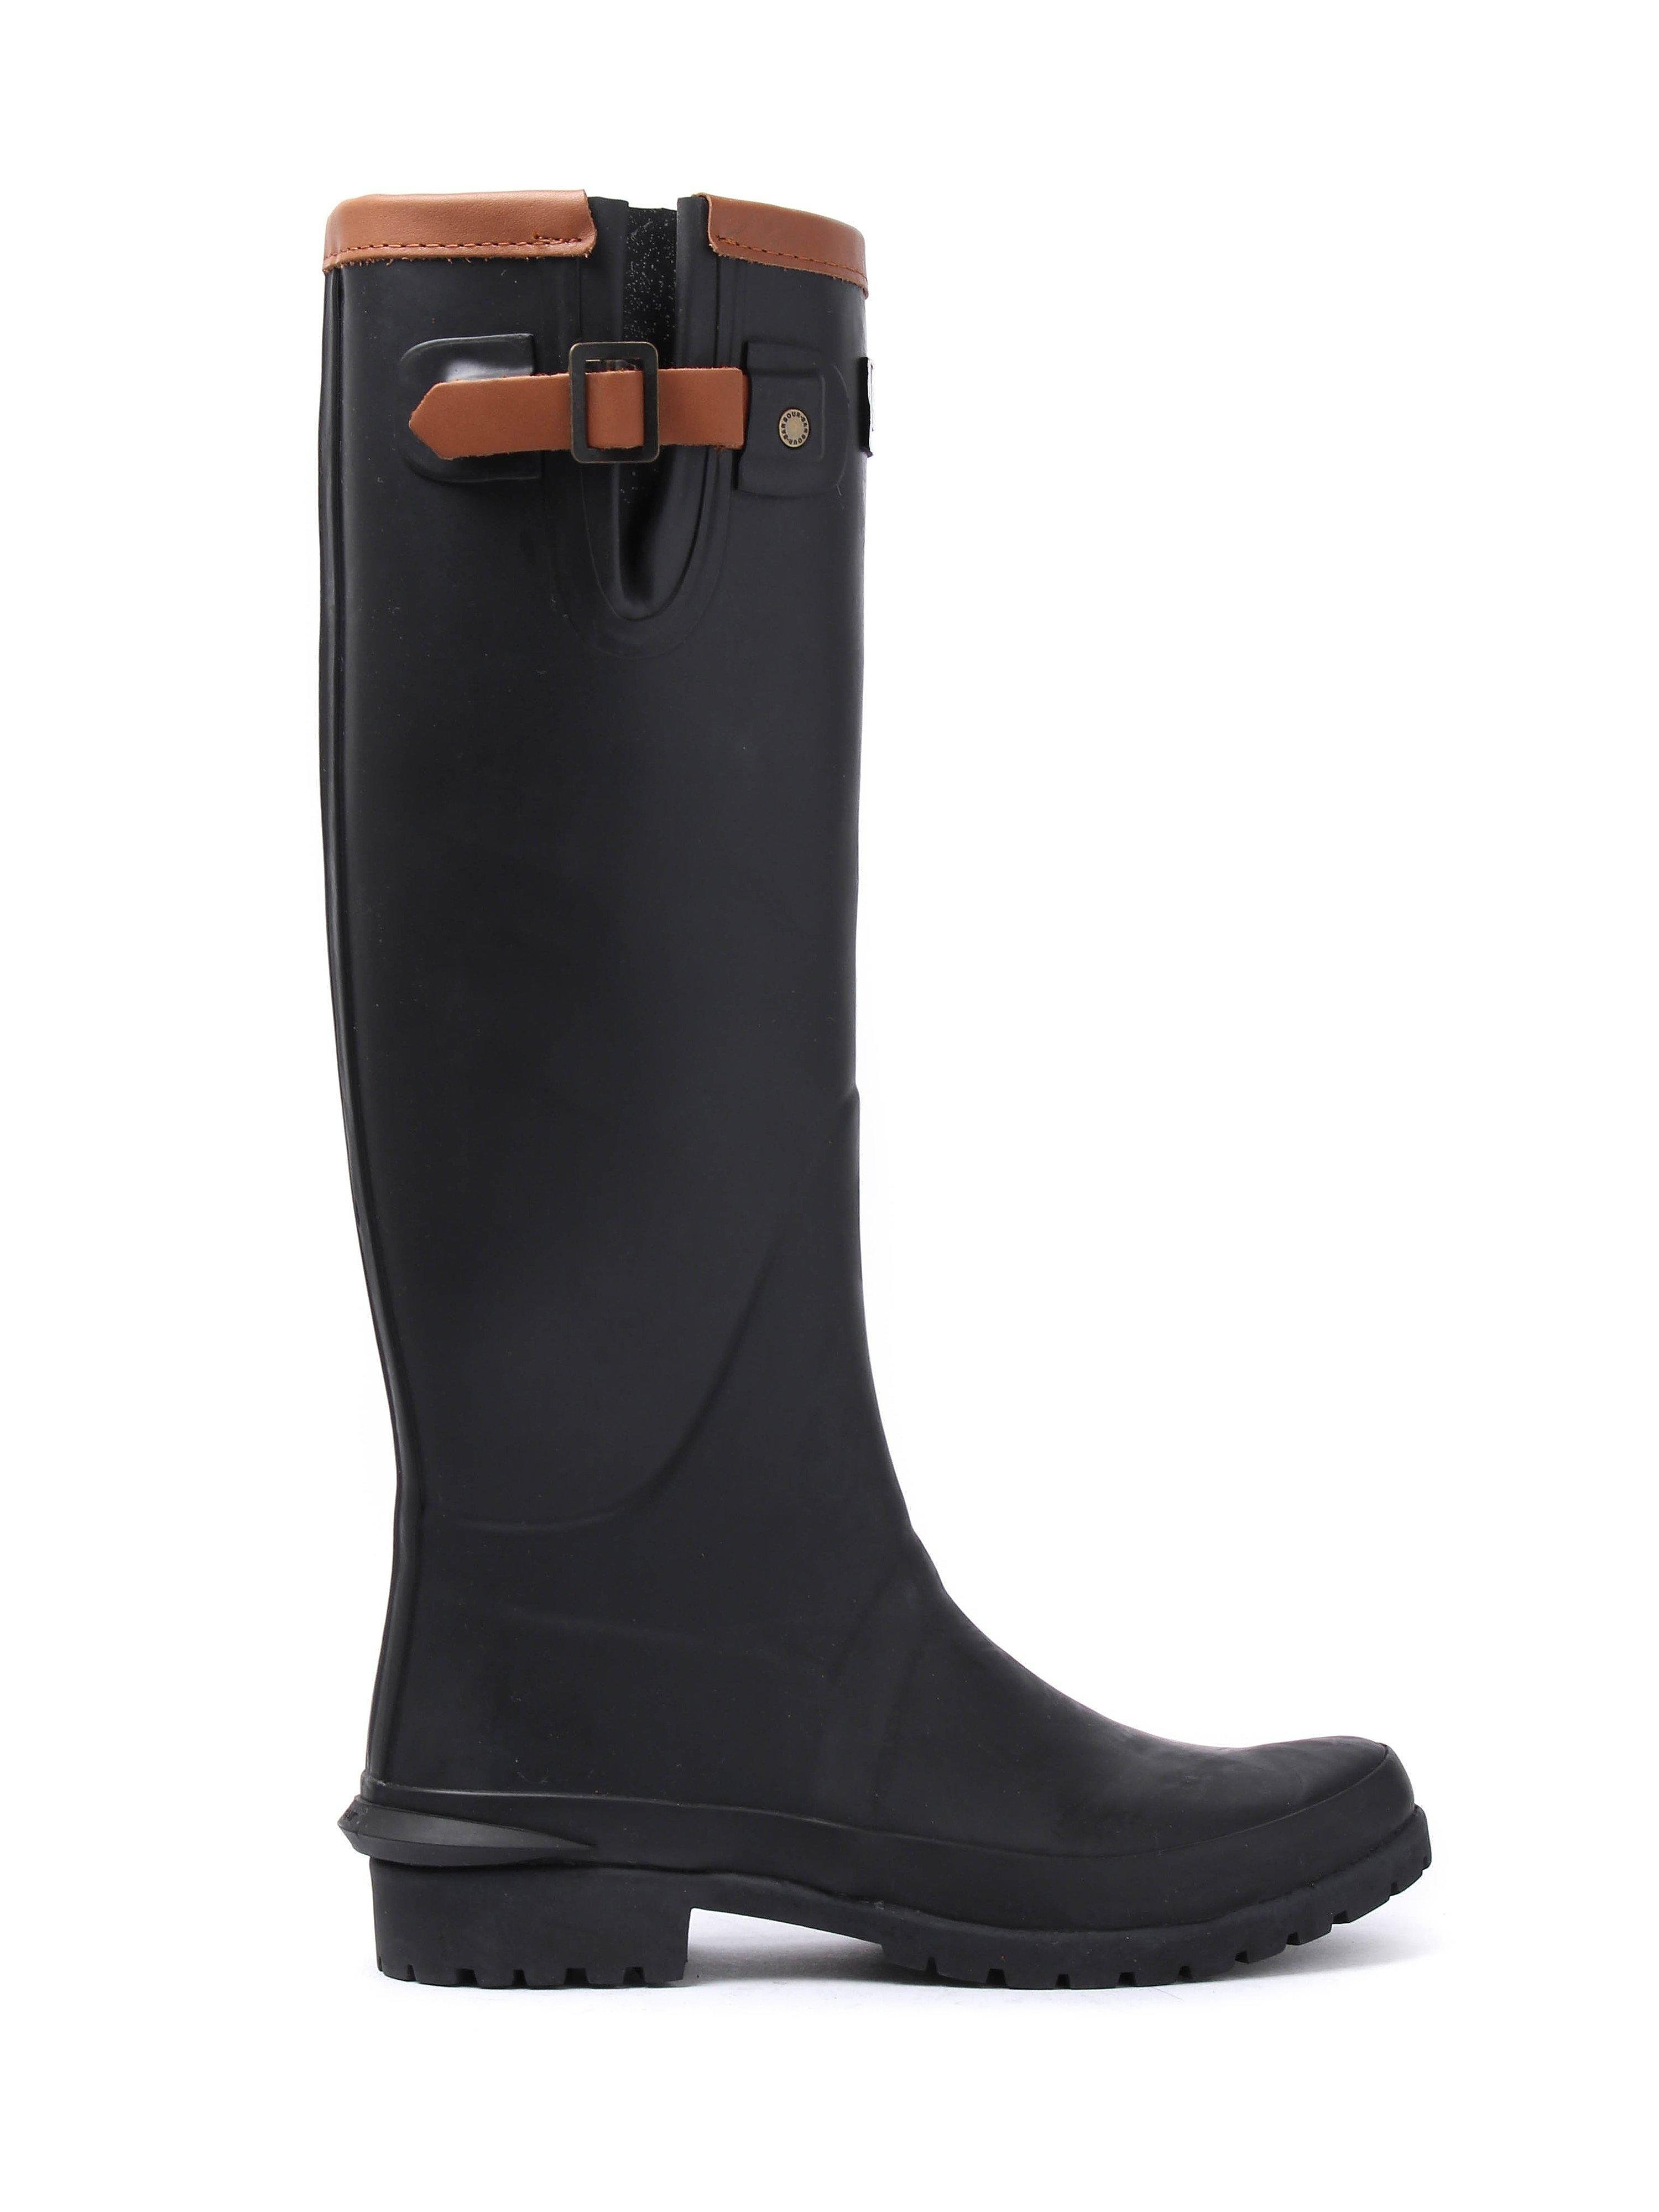 Barbour Women's Blyth Wellington Boots - Black